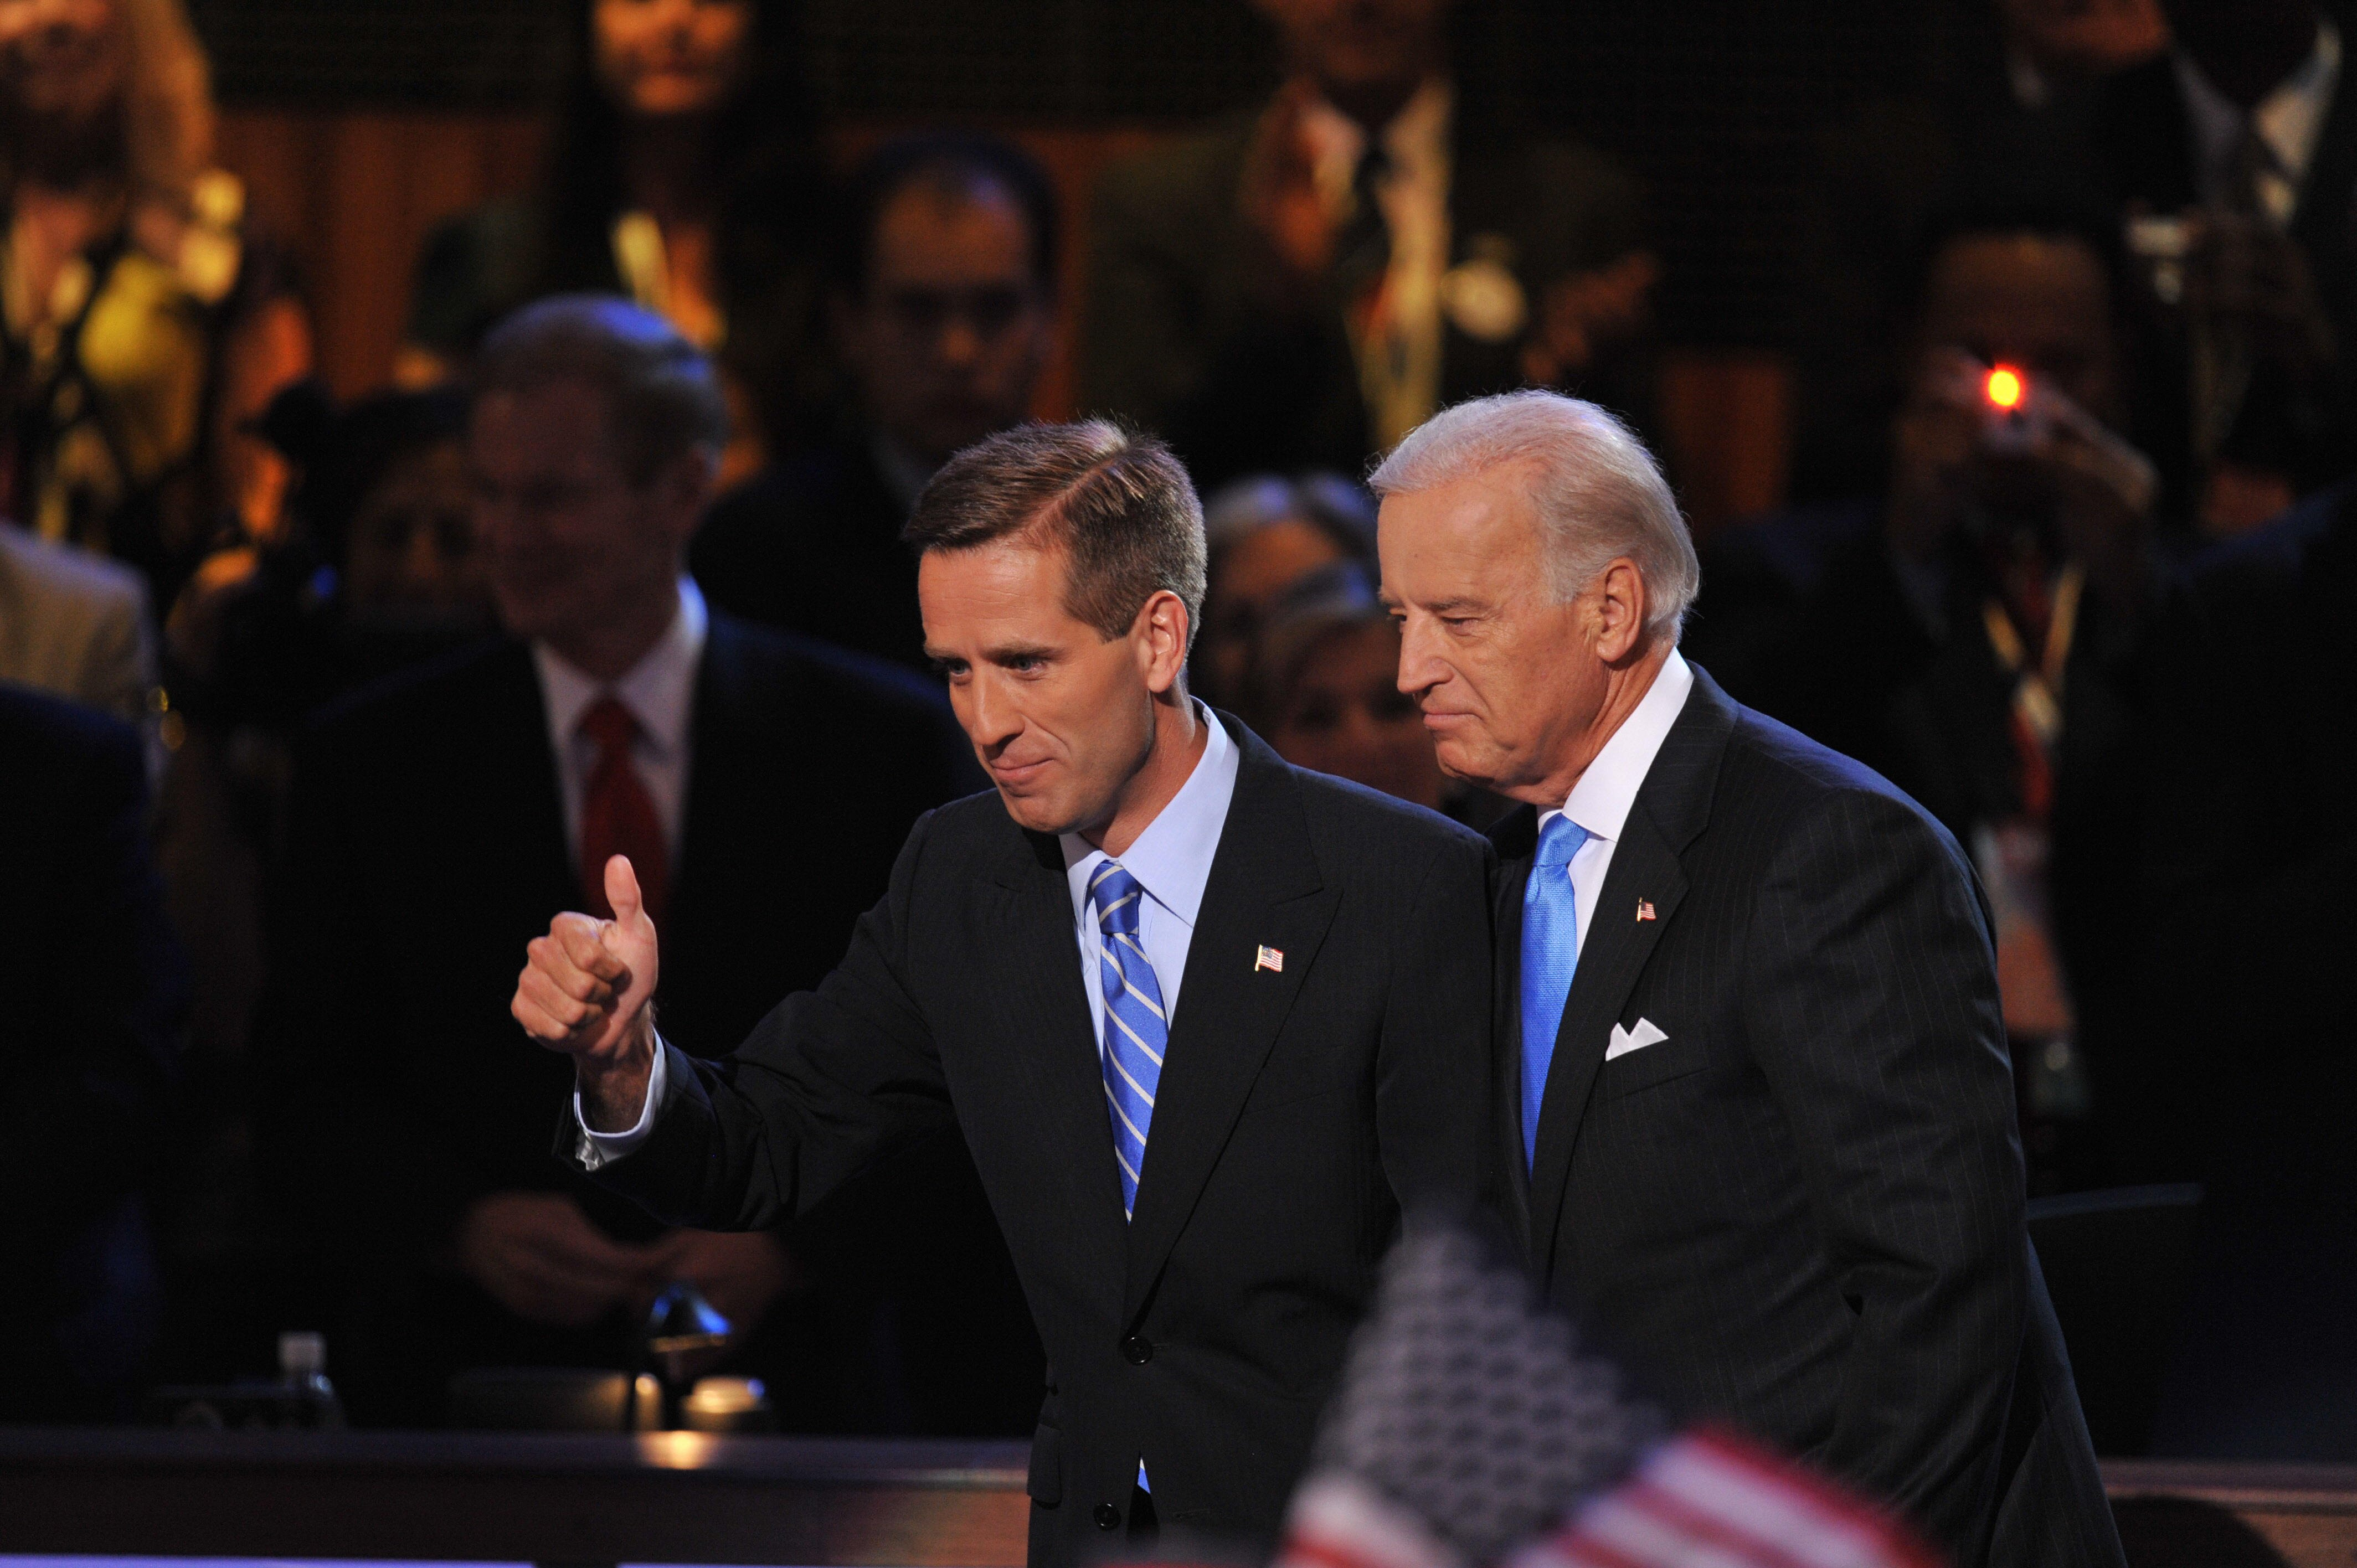 Democratic vice presidential nominee Joe Biden and his son Beau acknowledge the crowd during the Democratic National Convention August 27, 2008 at the Pepsi Center in Denver, Colorado. (PAUL J. RICHARDS/AFP/Getty Images)